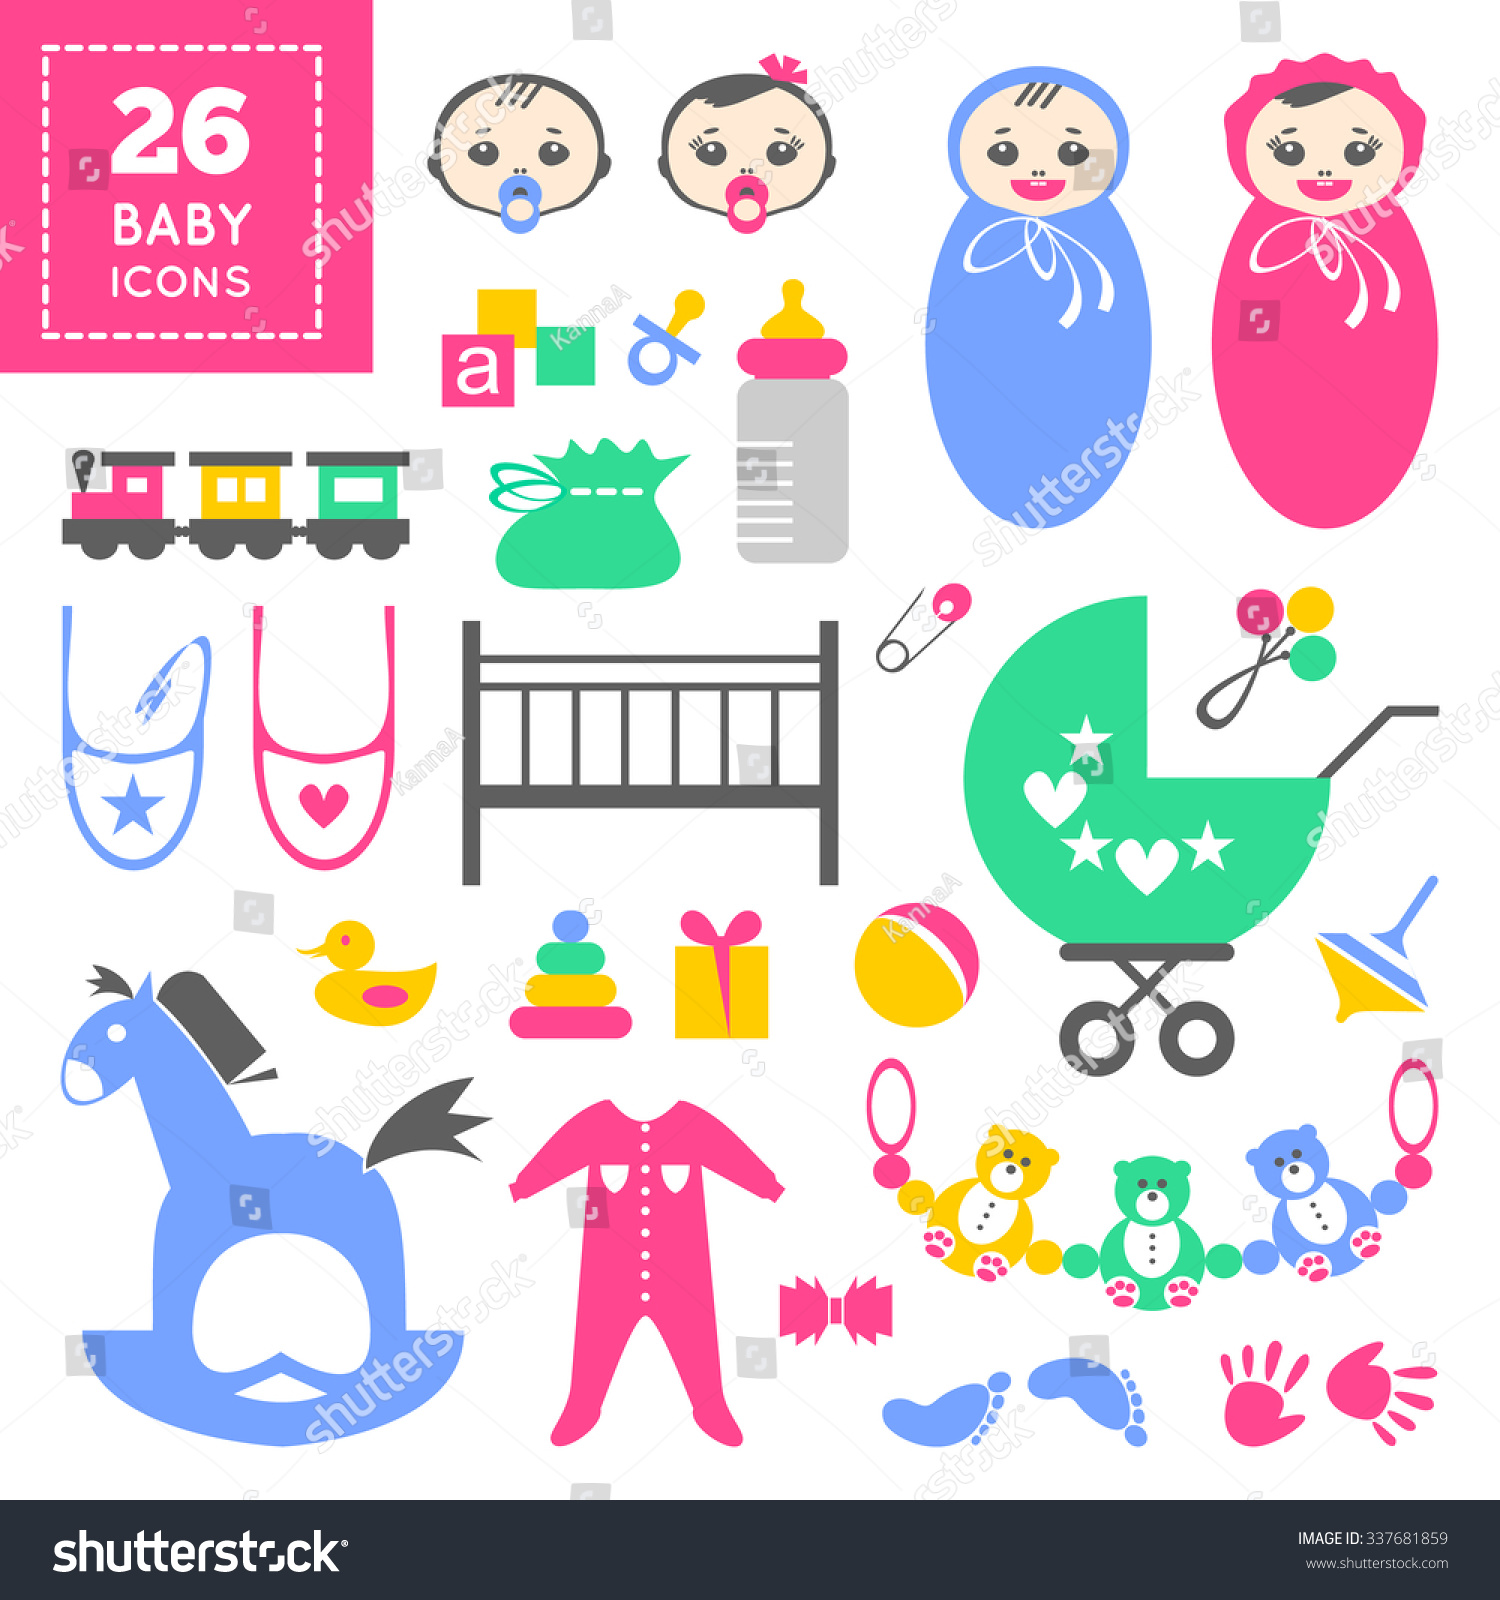 Colorful Baby Icon Set Cool Cartoon Stock Vector